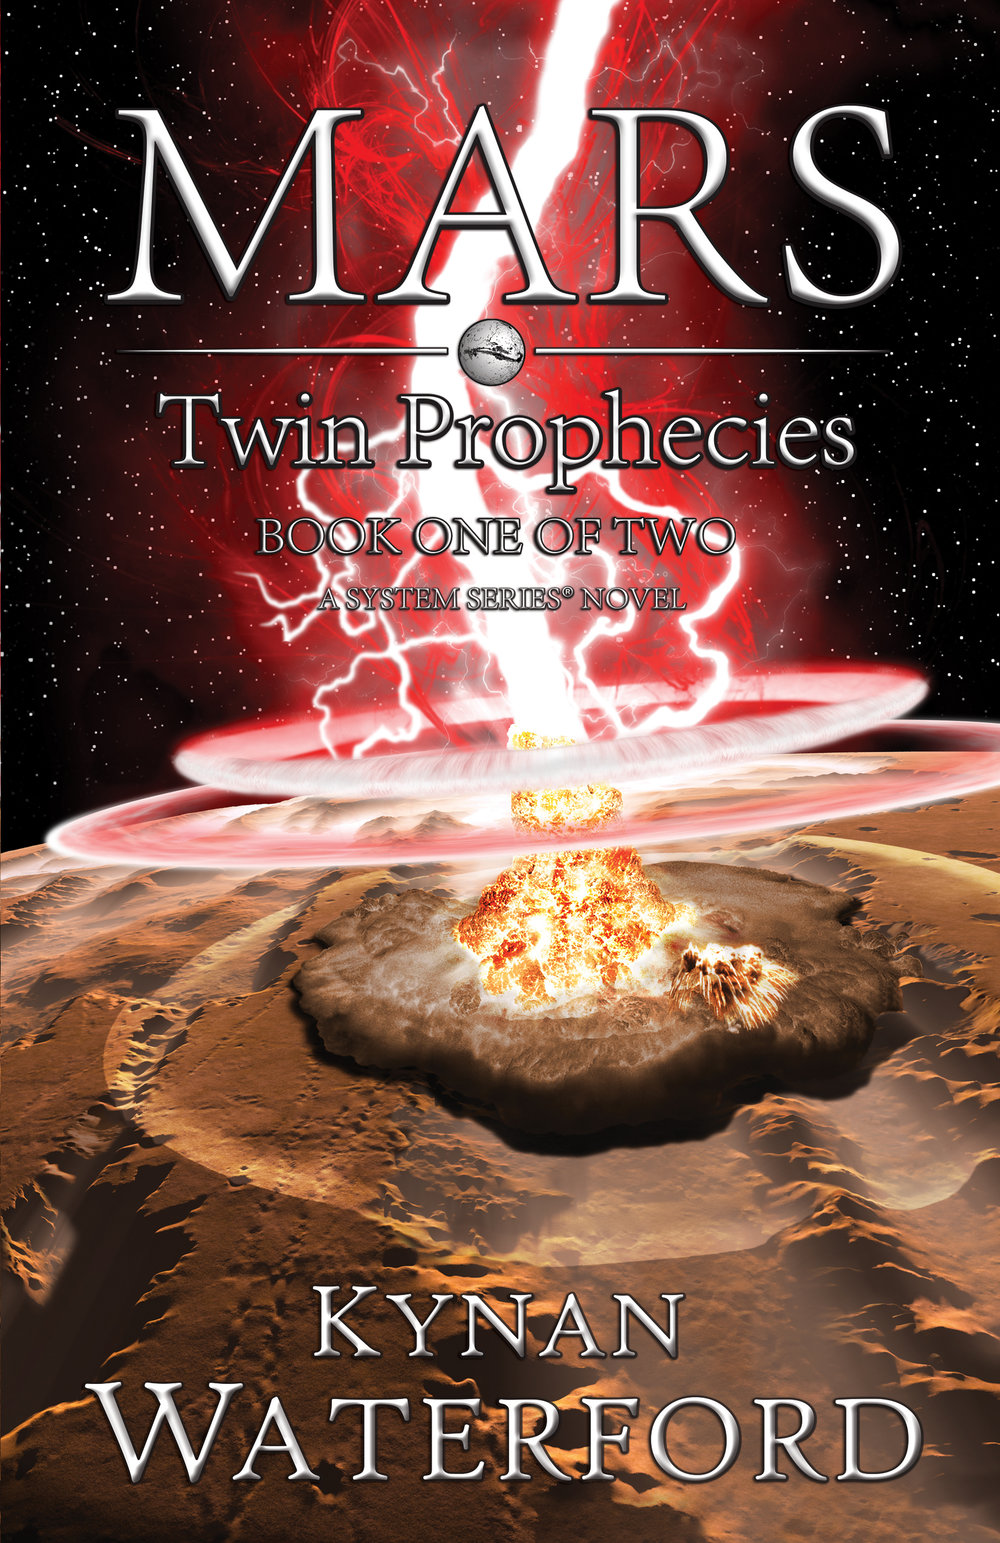 Mars_Twin_Prophecies_Kynan_Waterford